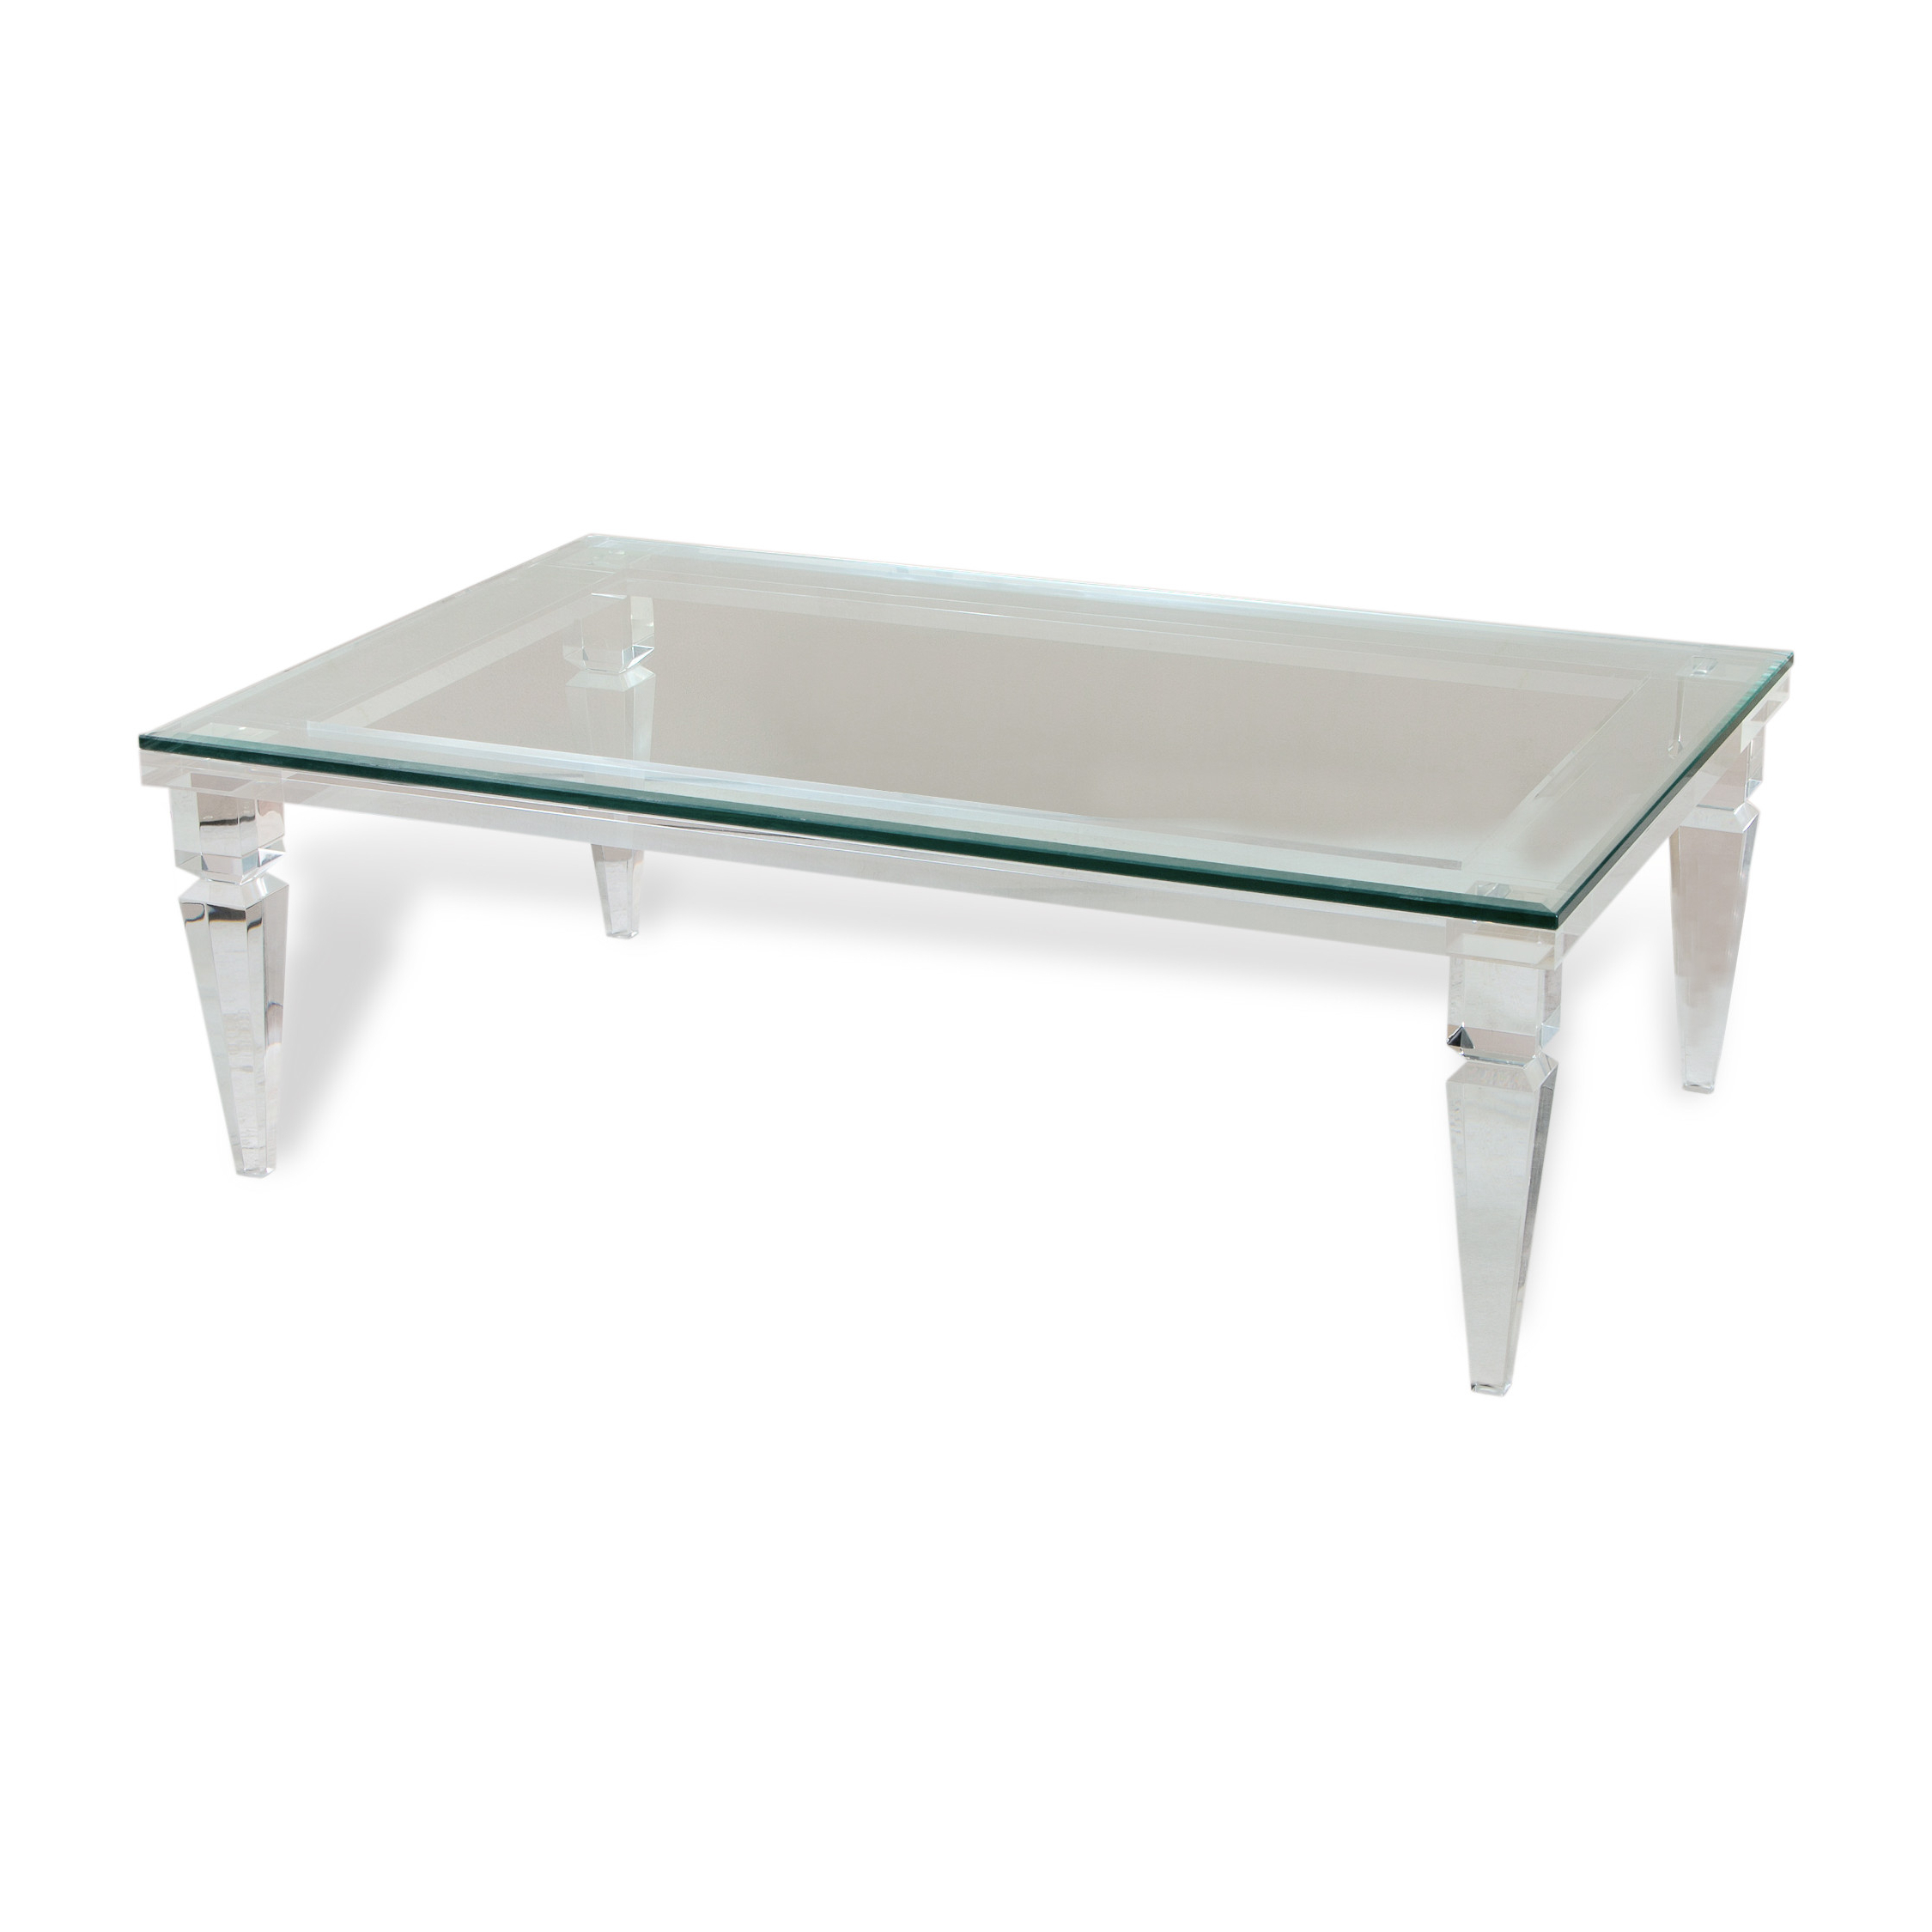 Most Up To Date Peekaboo Acrylic Tall Coffee Tables Within Coffee Table: Gallery Photos Of Acrylic Coffee Table Muniz Acrylic (View 15 of 20)